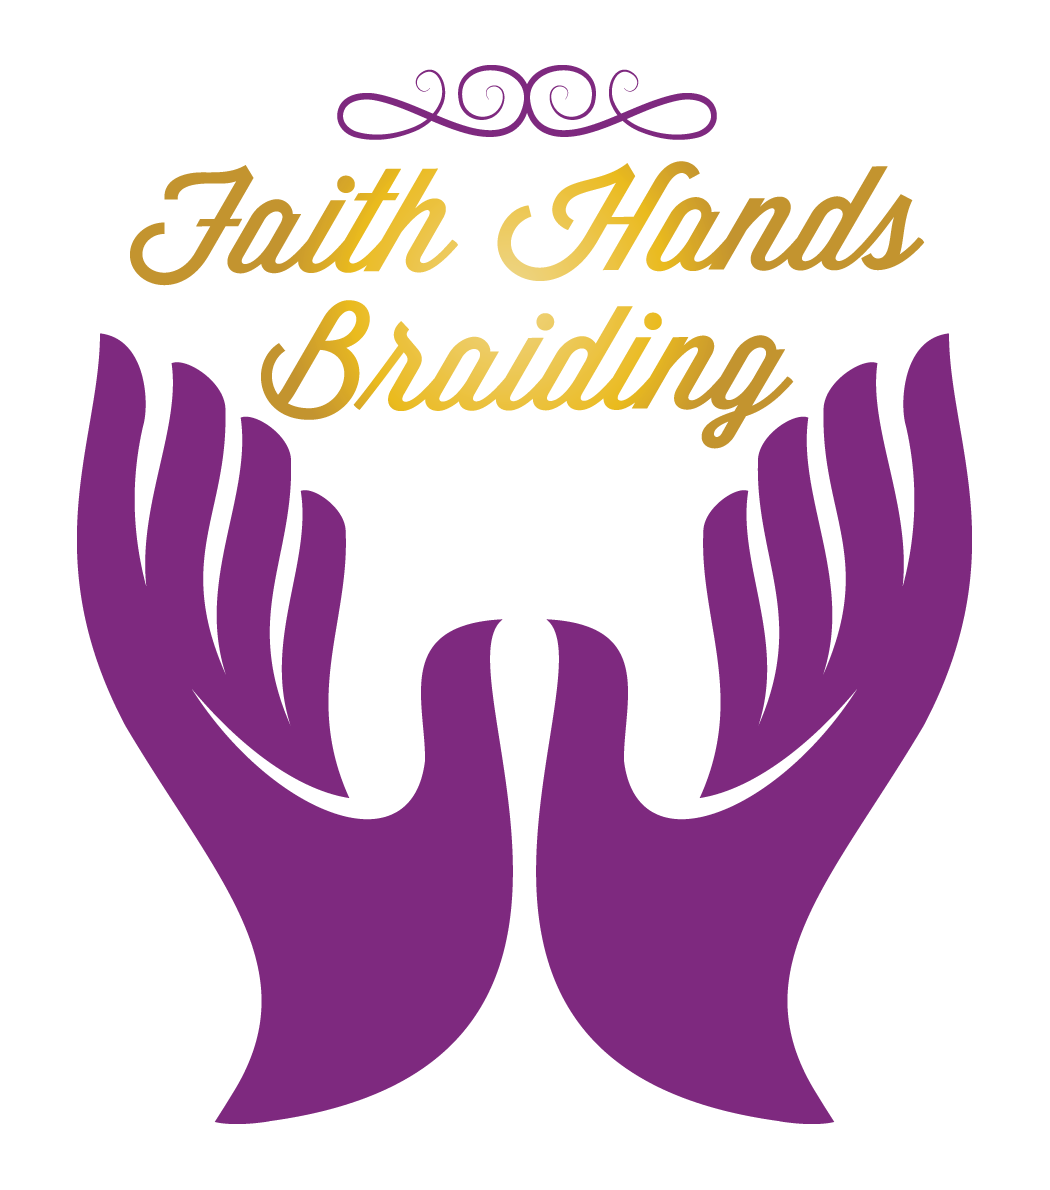 Faith Hands Braiding mobile business logo